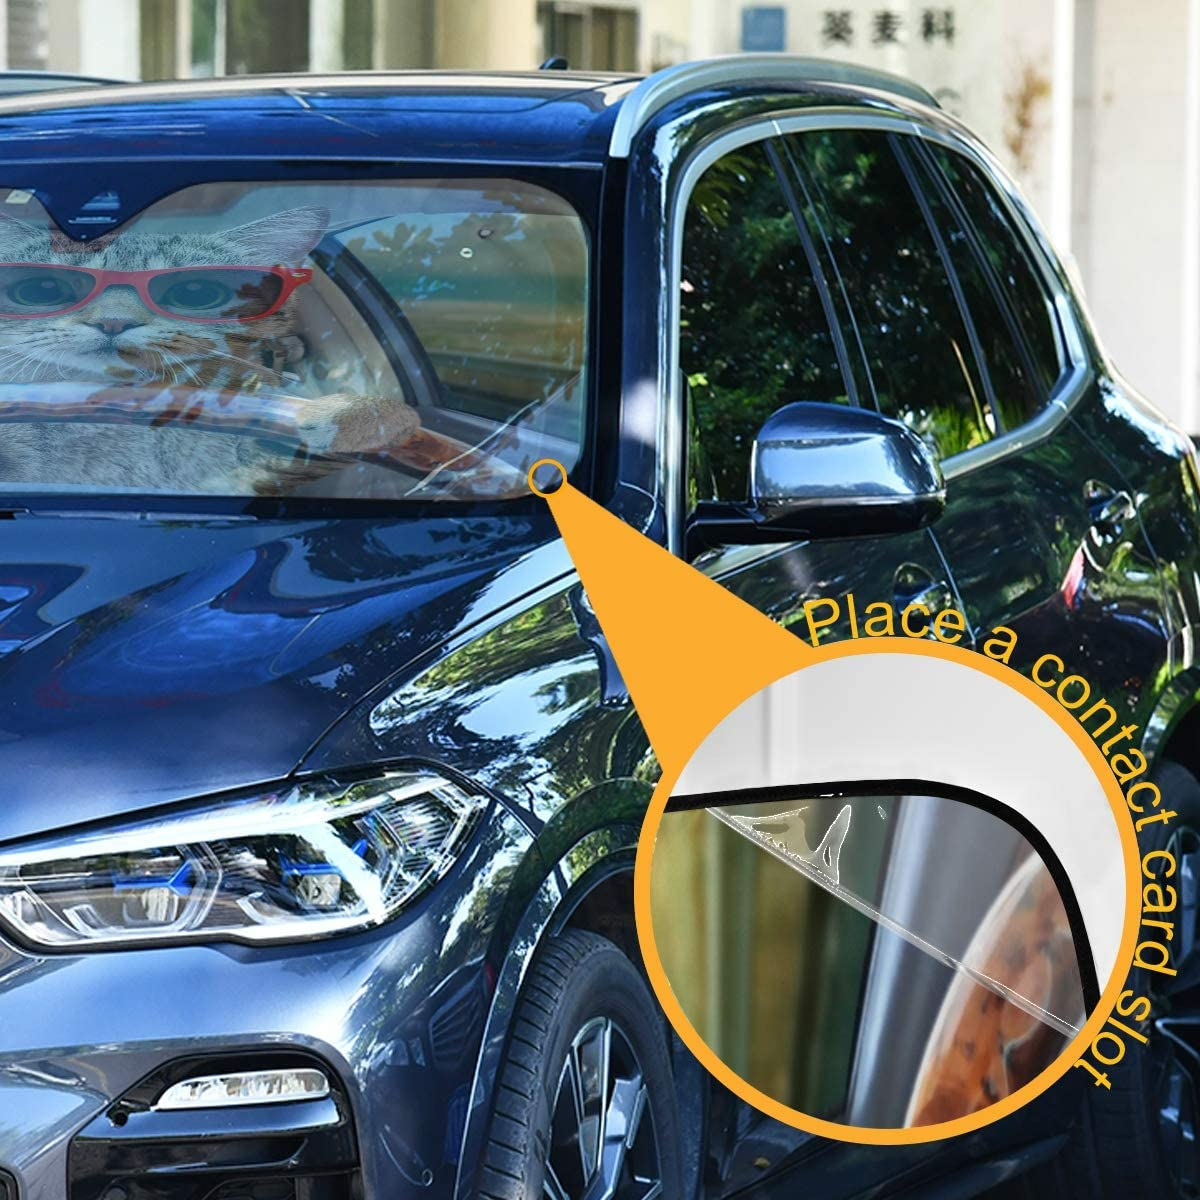 Oarencol Yellow Eyes Black Panther Car Windshield Sun Shade Foldable UV Ray Sun Visor Protector Sunshade to Keep Your Vehicle Cool 55 x 27.6